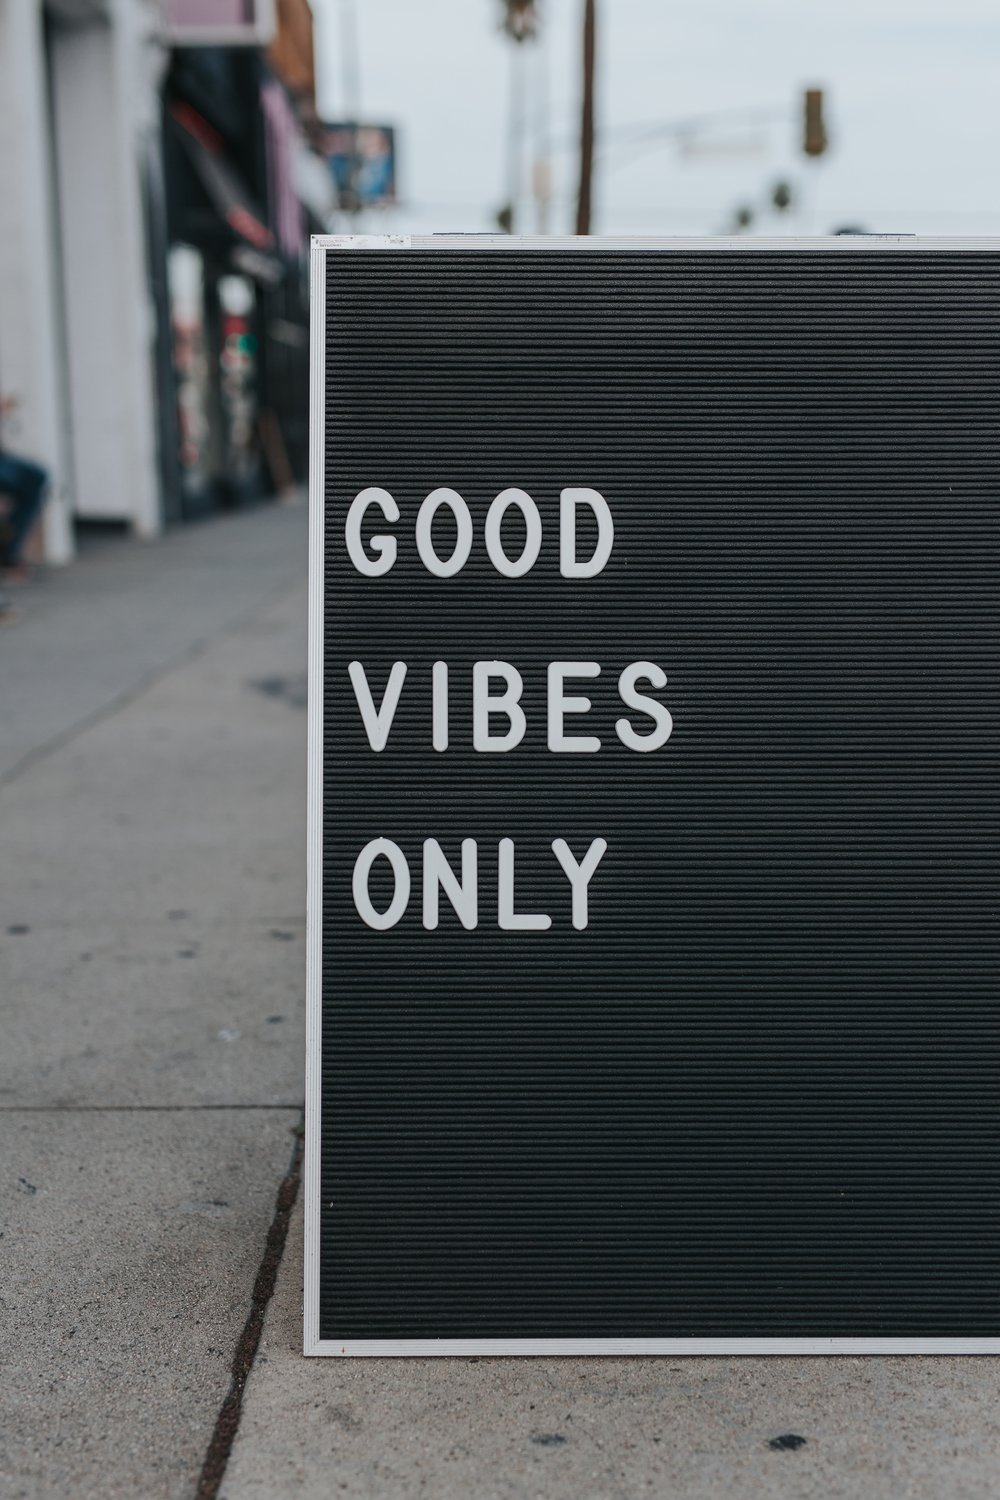 Good vibes only sign Photo by  MARK ADRIANE  on  Unsplash